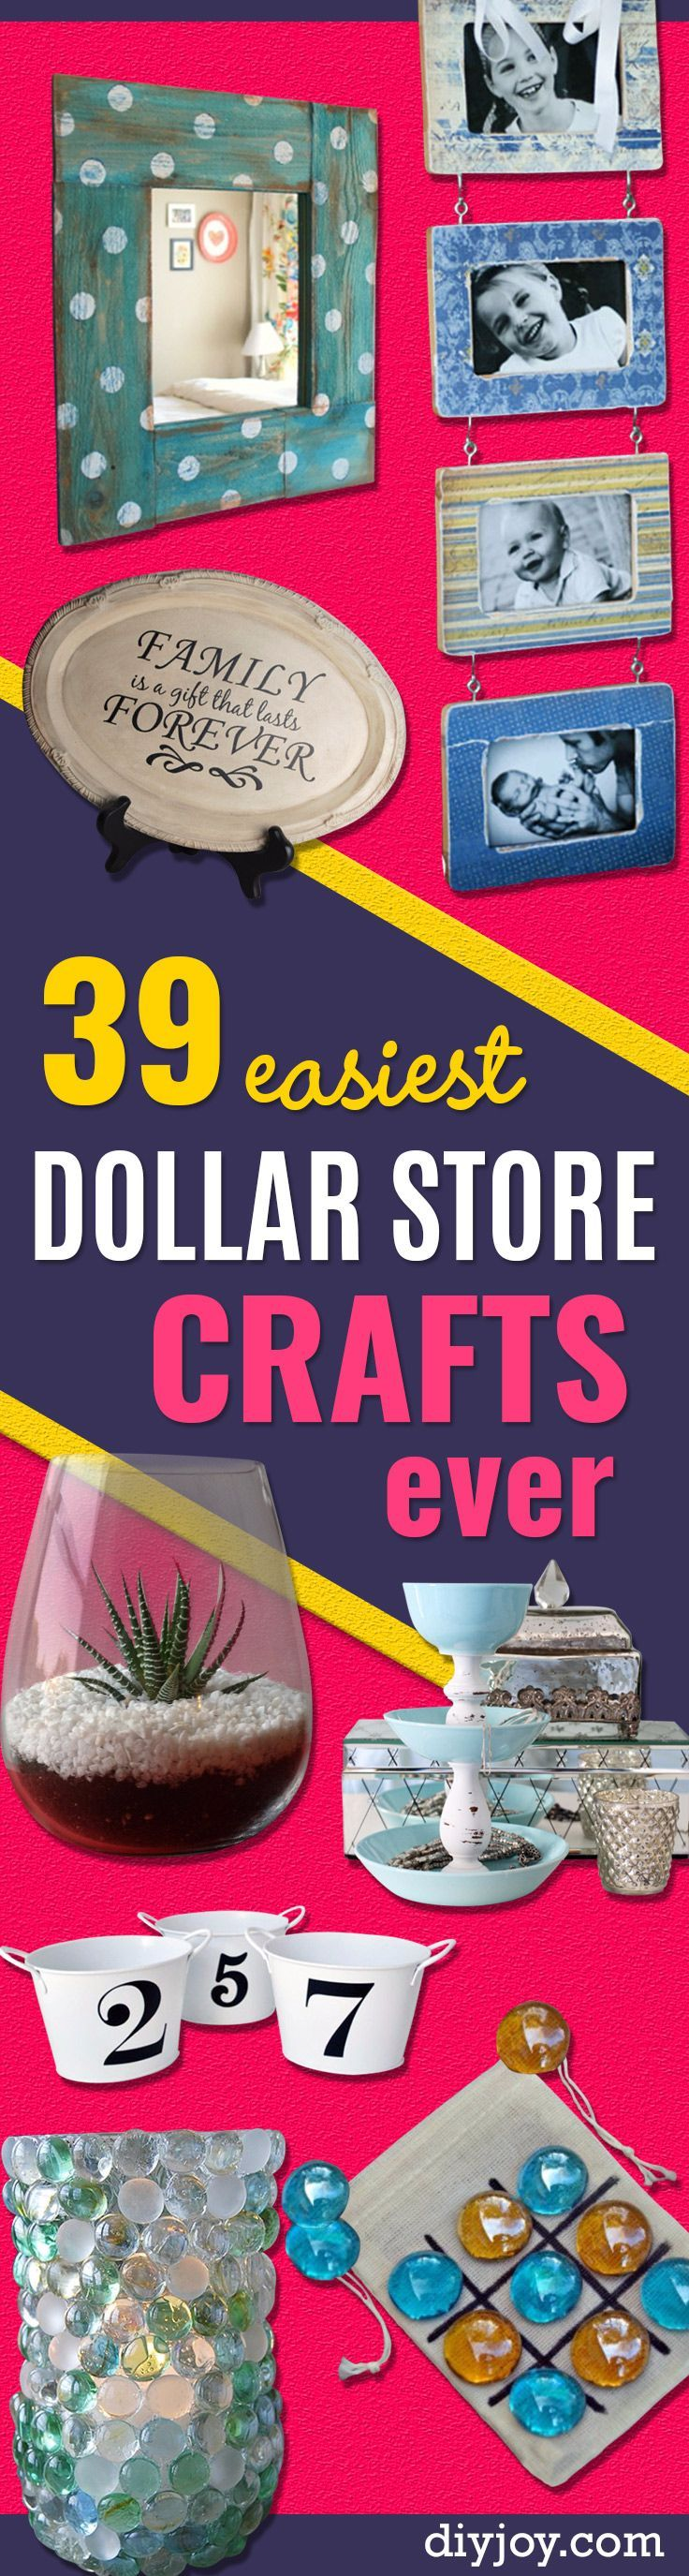 39 easiest dollar store crafts ever dollar store crafts for Cute diys to sell